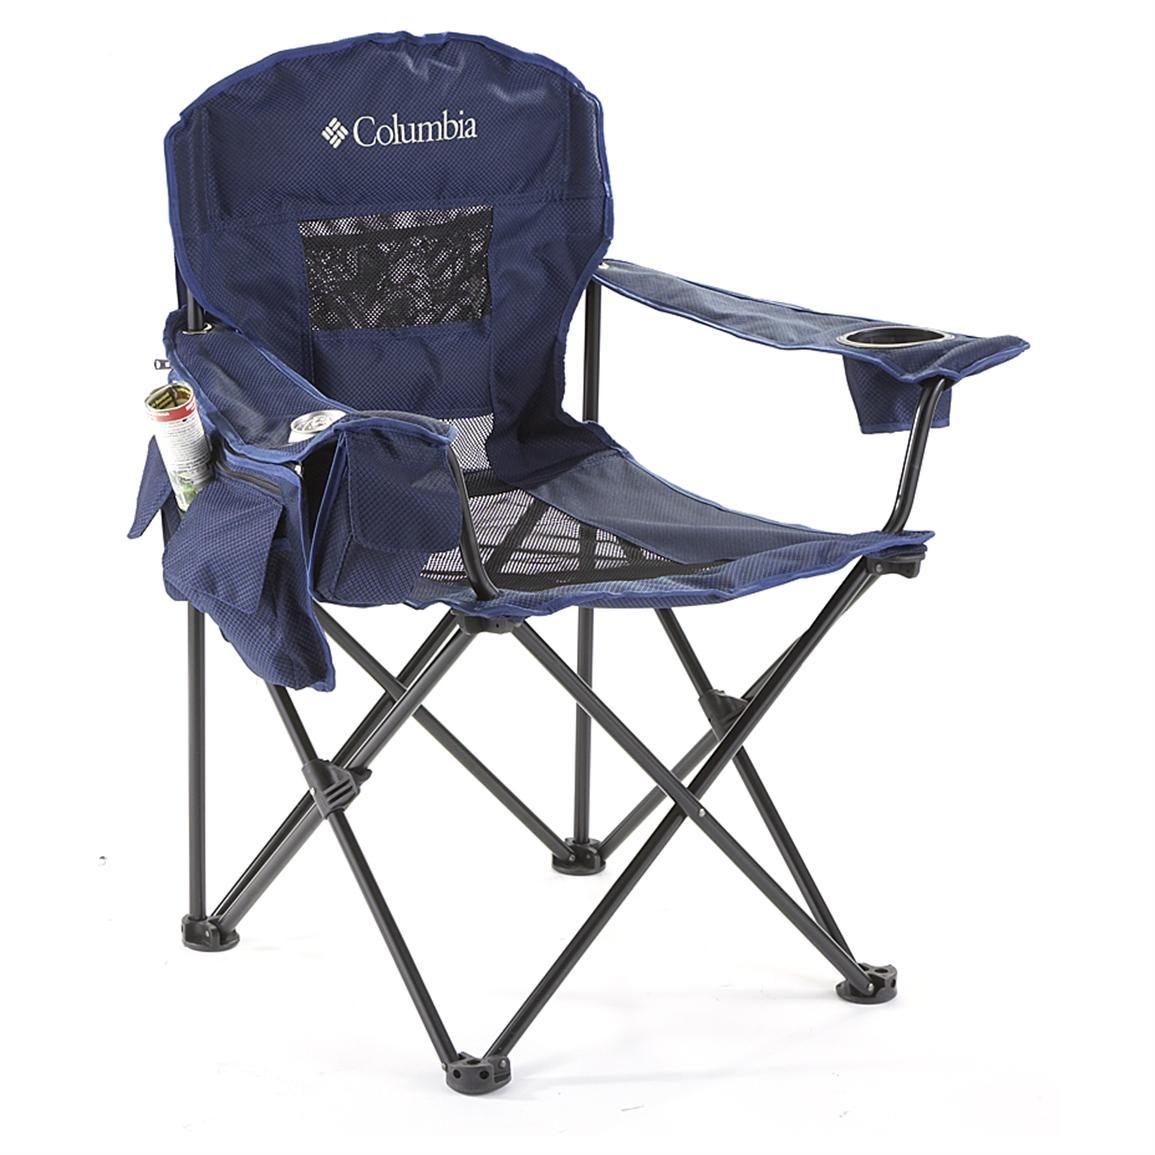 Campfire Chairs Columbia Cool Creek Camp Chair 182031 Chairs At